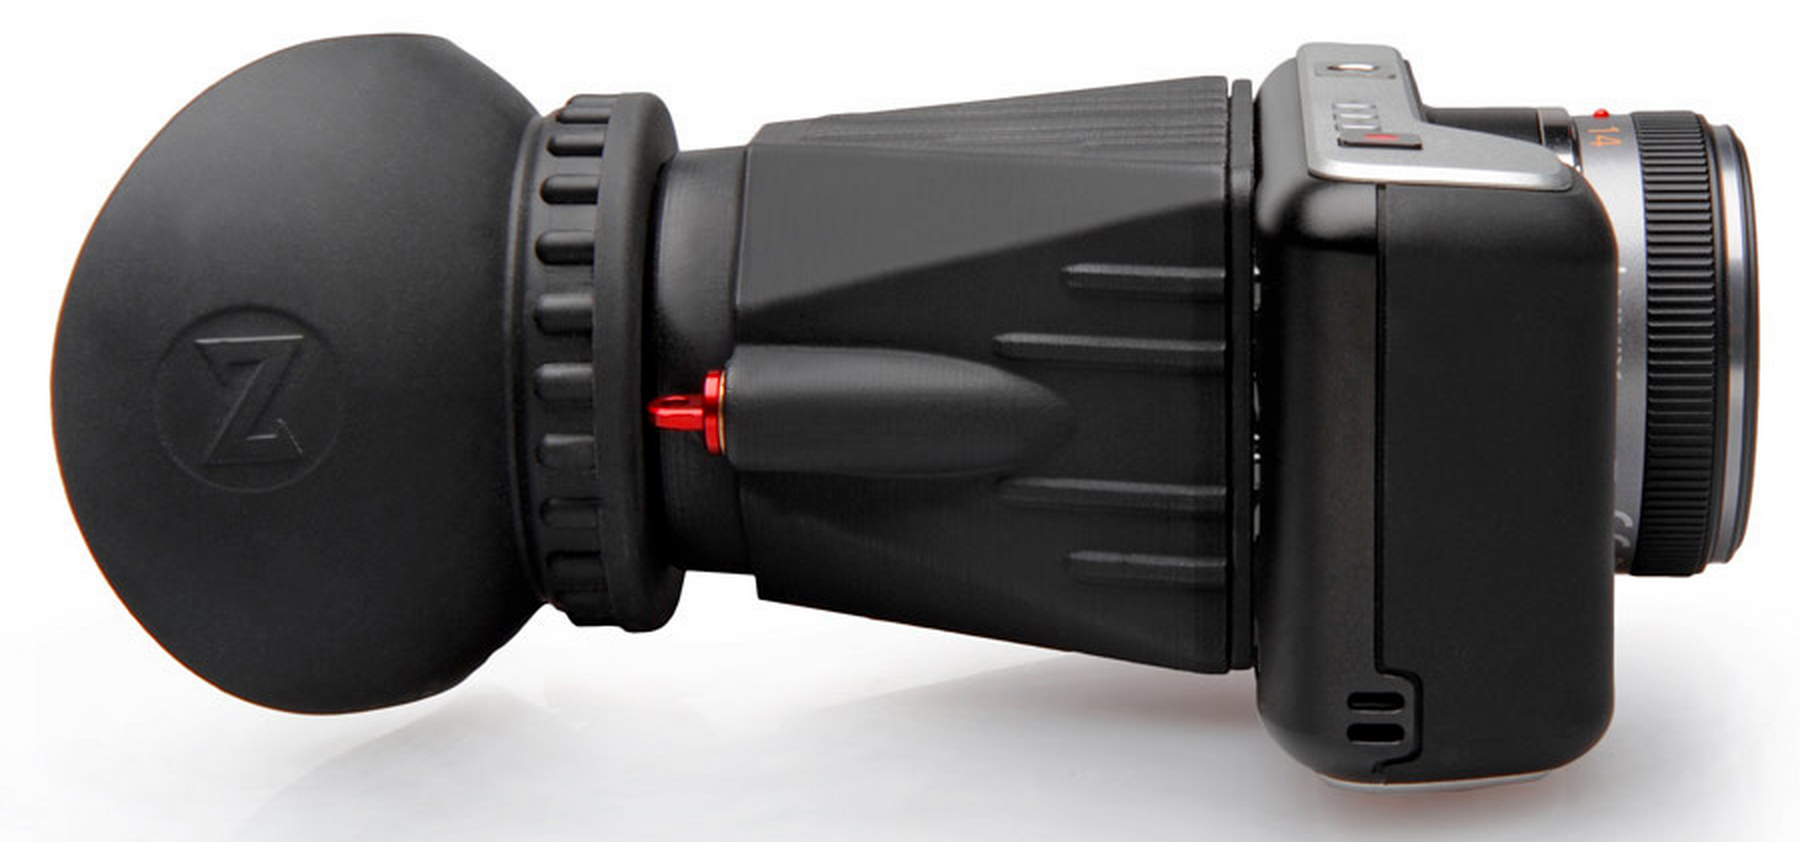 Zacuto Z-finder for Blackmagic Pocket Cinema Camera now available for pre-order